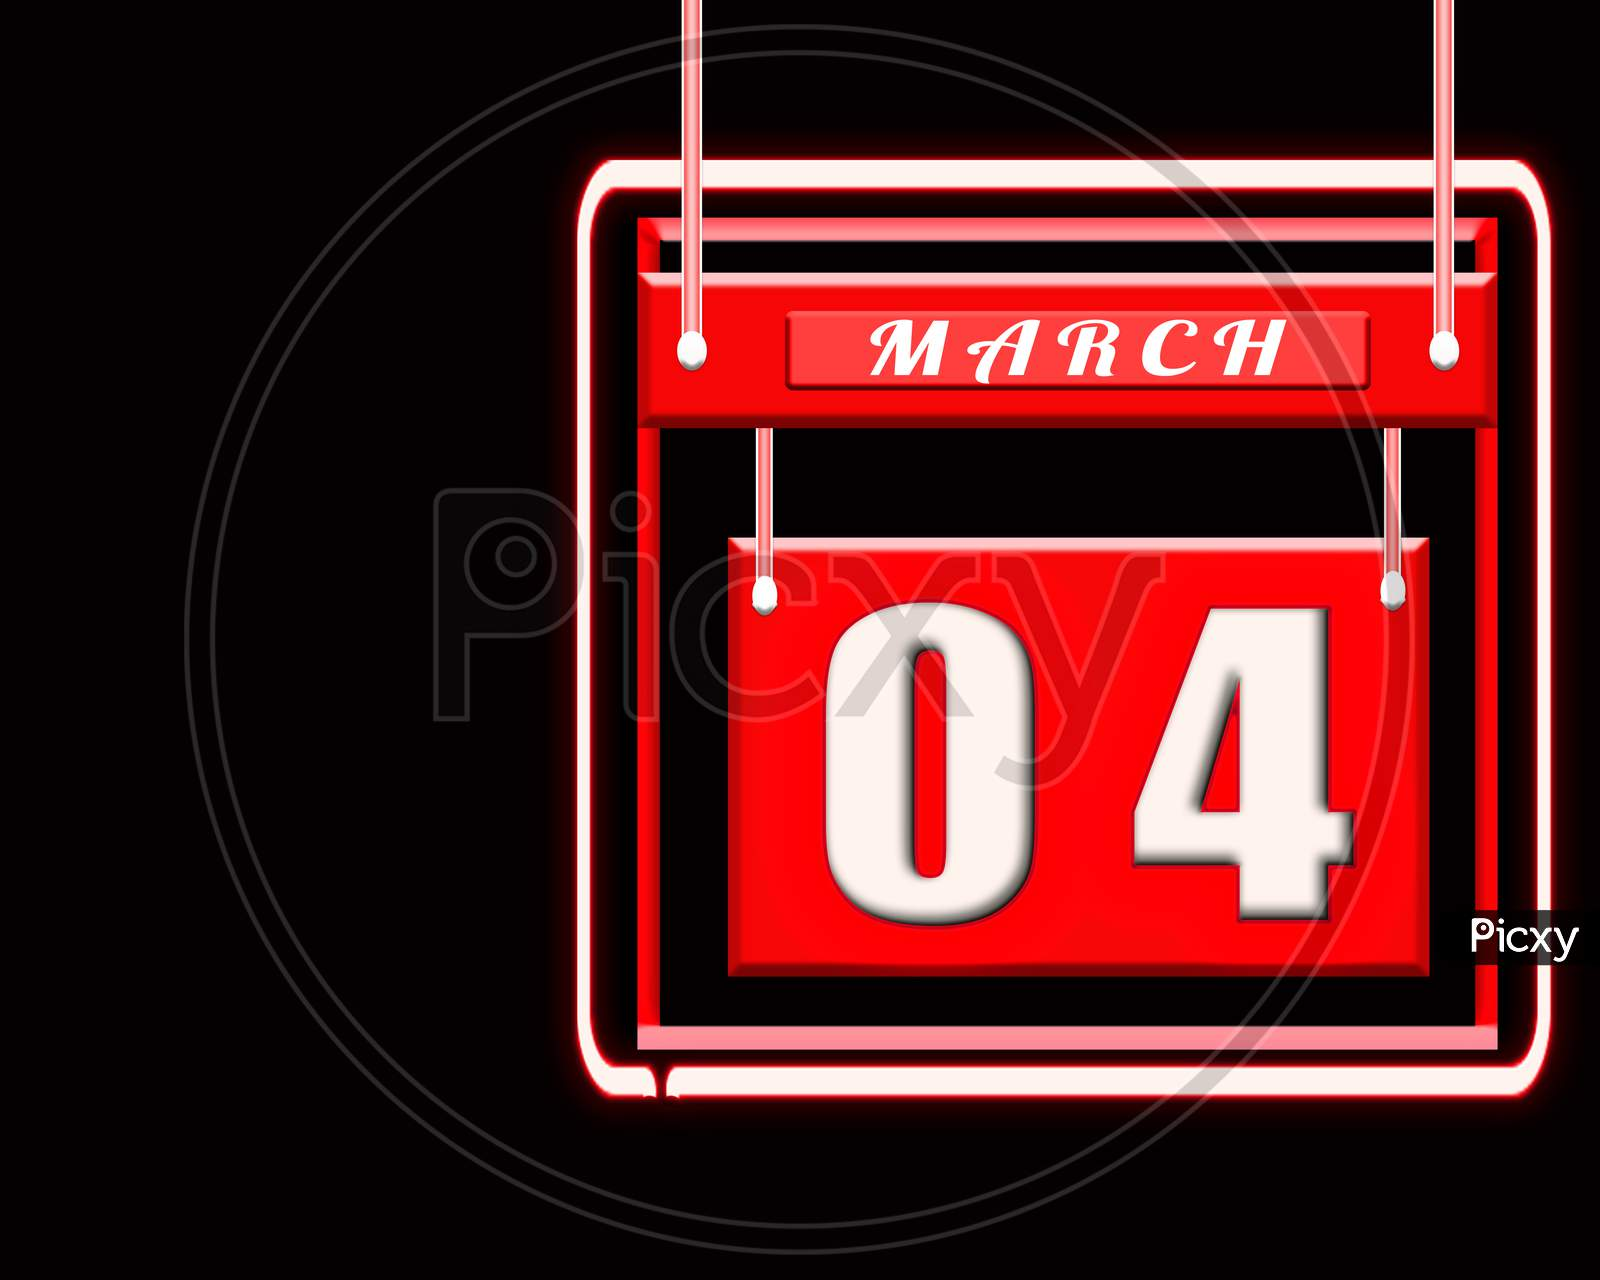 4 March, Red Calendar On Black Backgrand